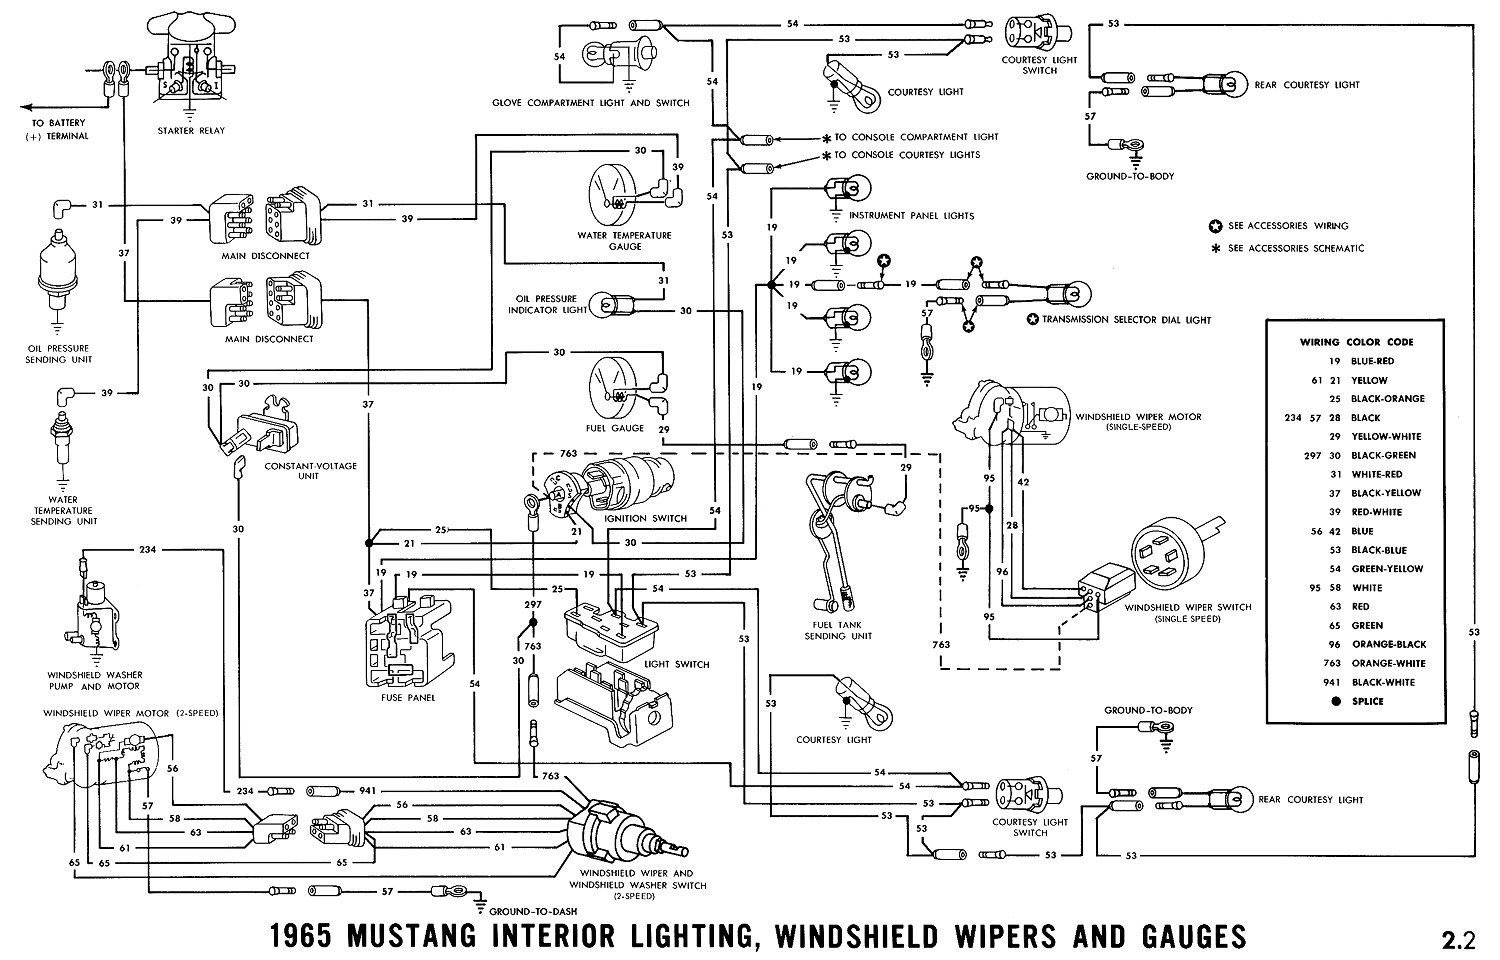 1965g 2013 mustang wiring diagram 1996 mustang radio wiring diagram 1968 mustang tail light wiring diagram at bakdesigns.co